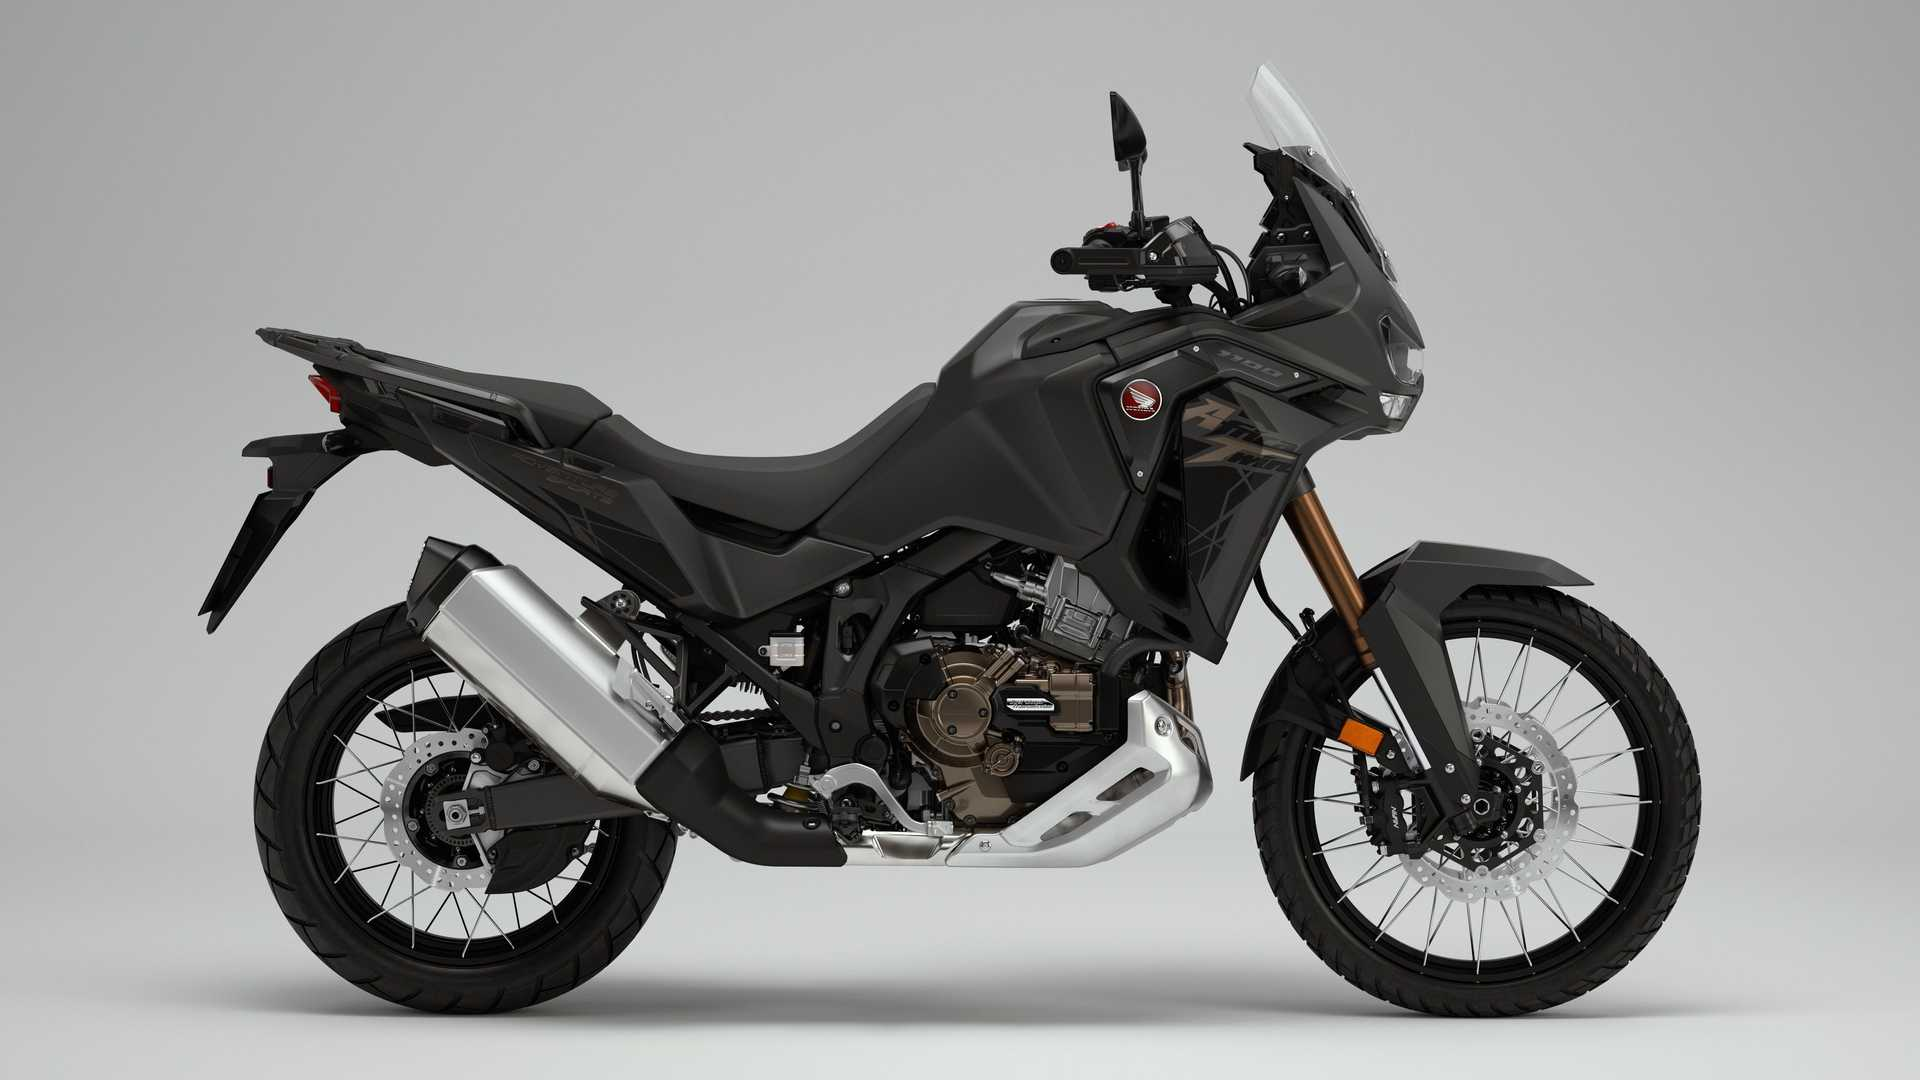 2022 Honda CRF1100L Africa Twin Adventure Sports - Cracked Terrain - Right Side